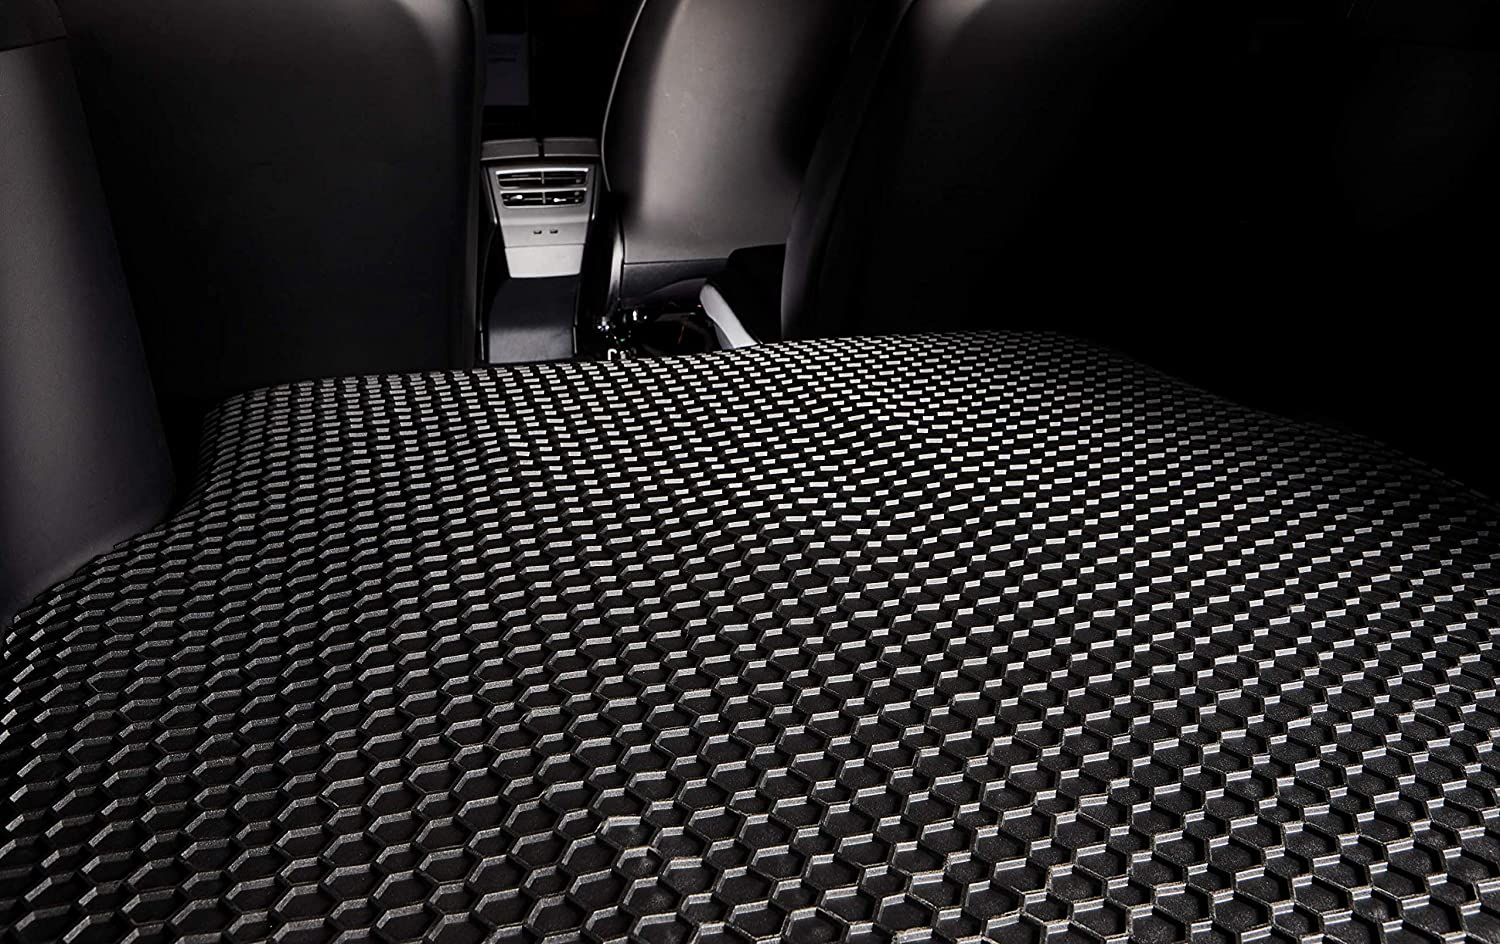 2017 2018 All Weather - Black Rubber 2020 Made in USA Heavy Duty - 2019 TOUGHPRO Cargo//Trunk Mat Compatible with Cadillac XT5